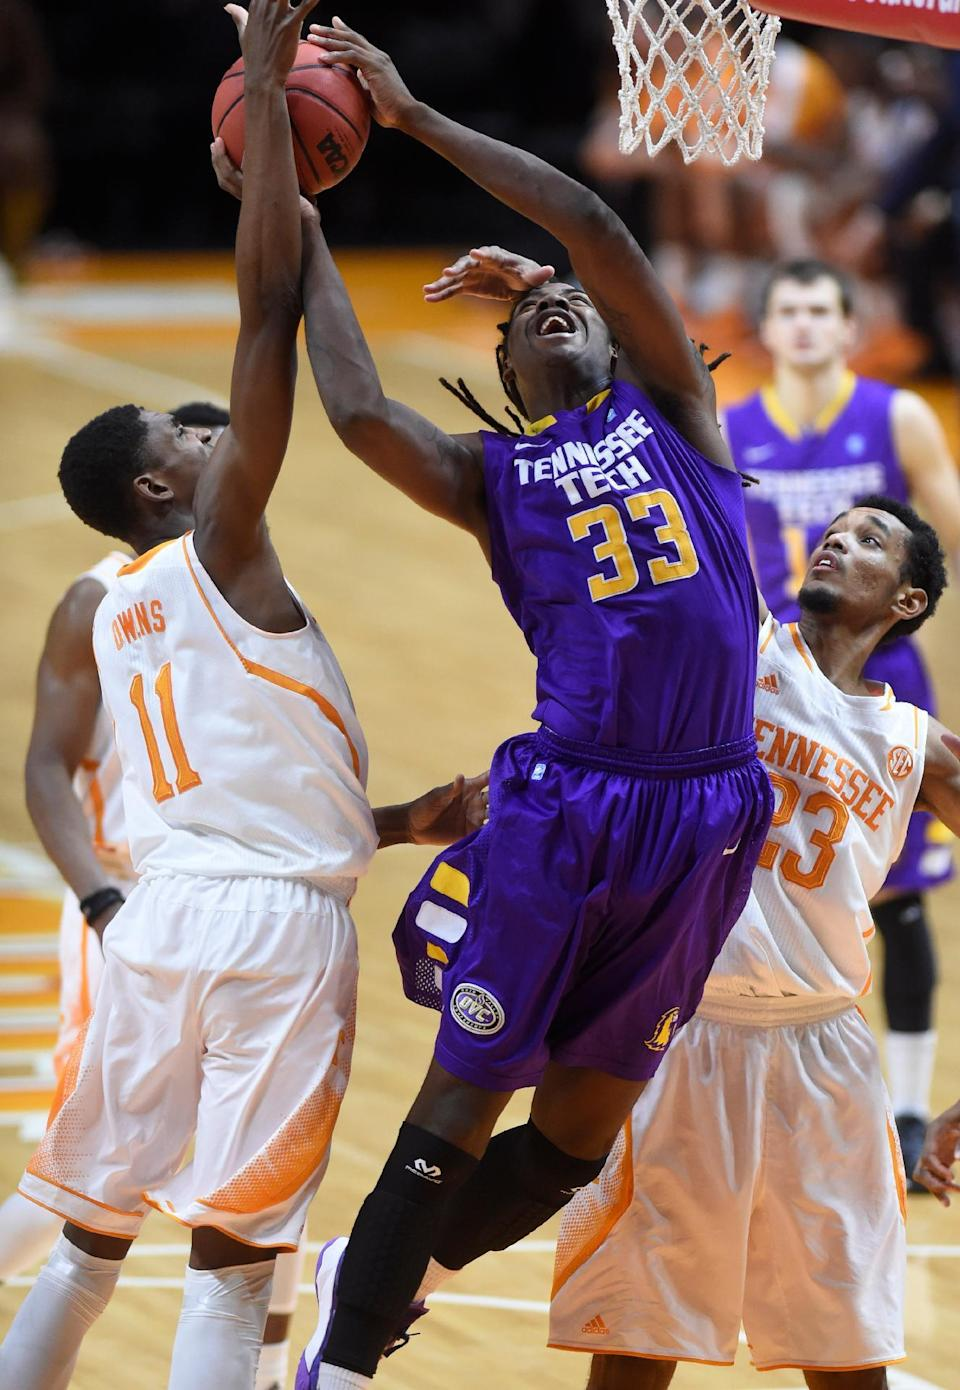 Tennessee forward Tariq Owens (11) blocks a layup by Tennessee Tech forward Dennis Ogbe (33) during the second half of an NCAA college basketball game in Knoxville, Tenn., on Friday, Dec. 19, 2014. (AP Photo/Knoxville News Sentinel, Adam Lau)